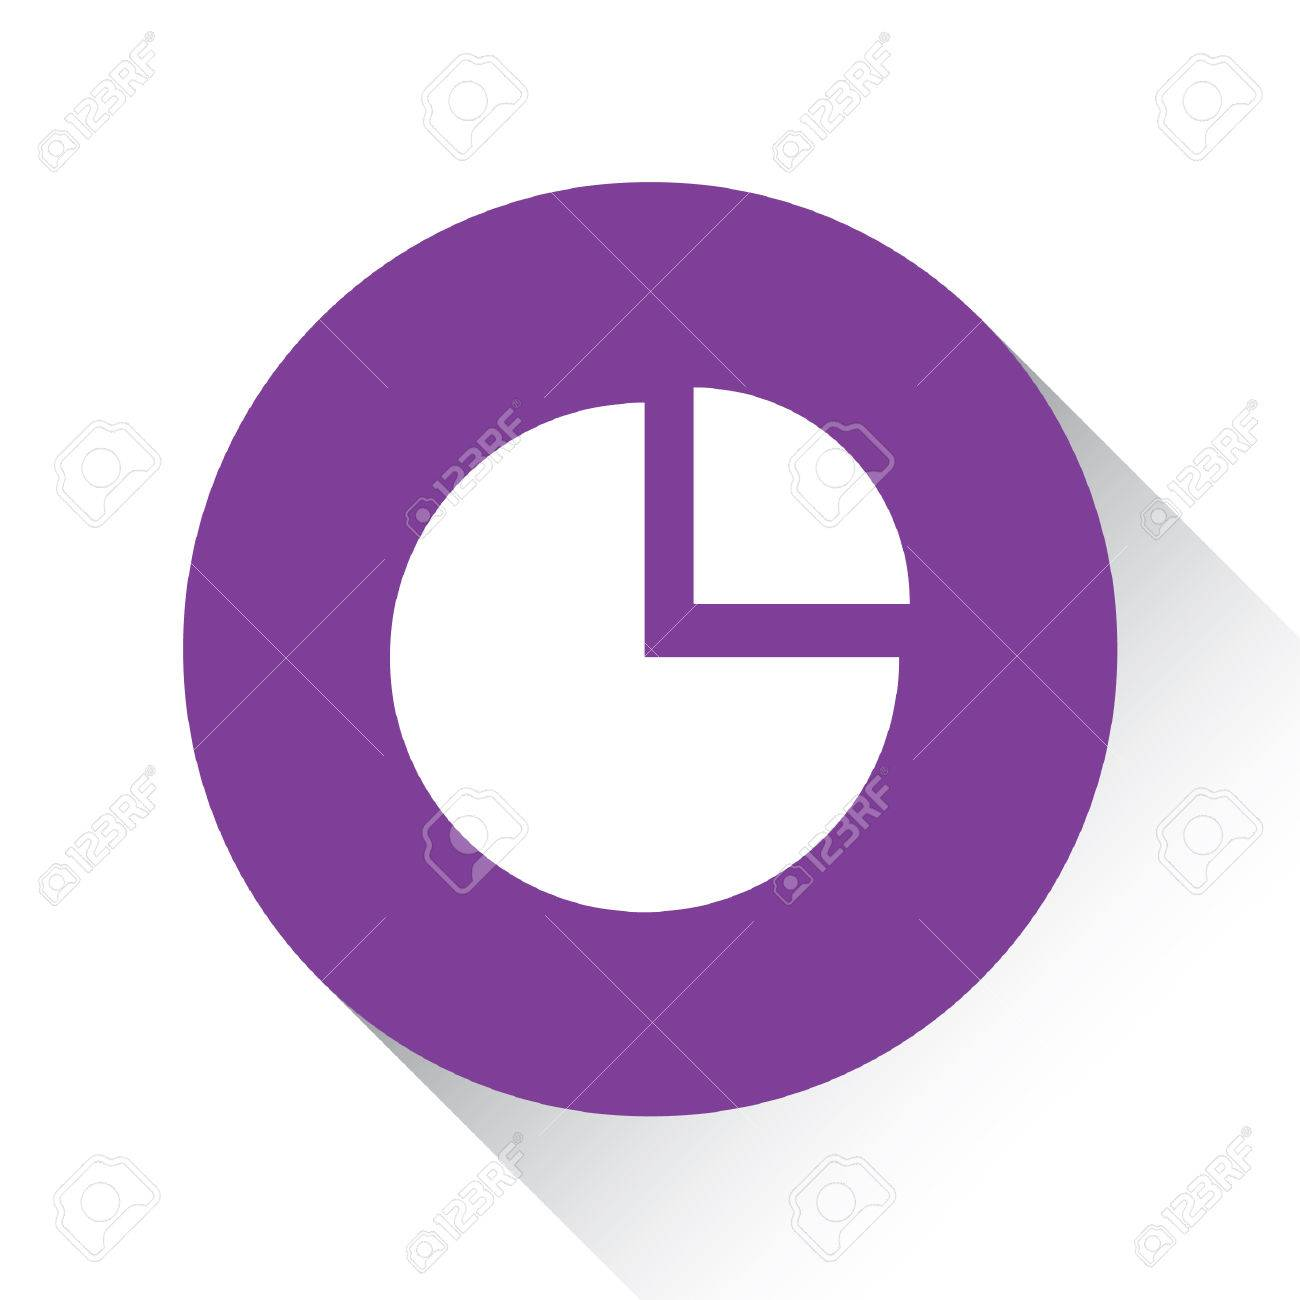 A purple icon isolated on a white background pie chart exploded a purple icon isolated on a white background pie chart exploded stock photo 46238686 nvjuhfo Image collections